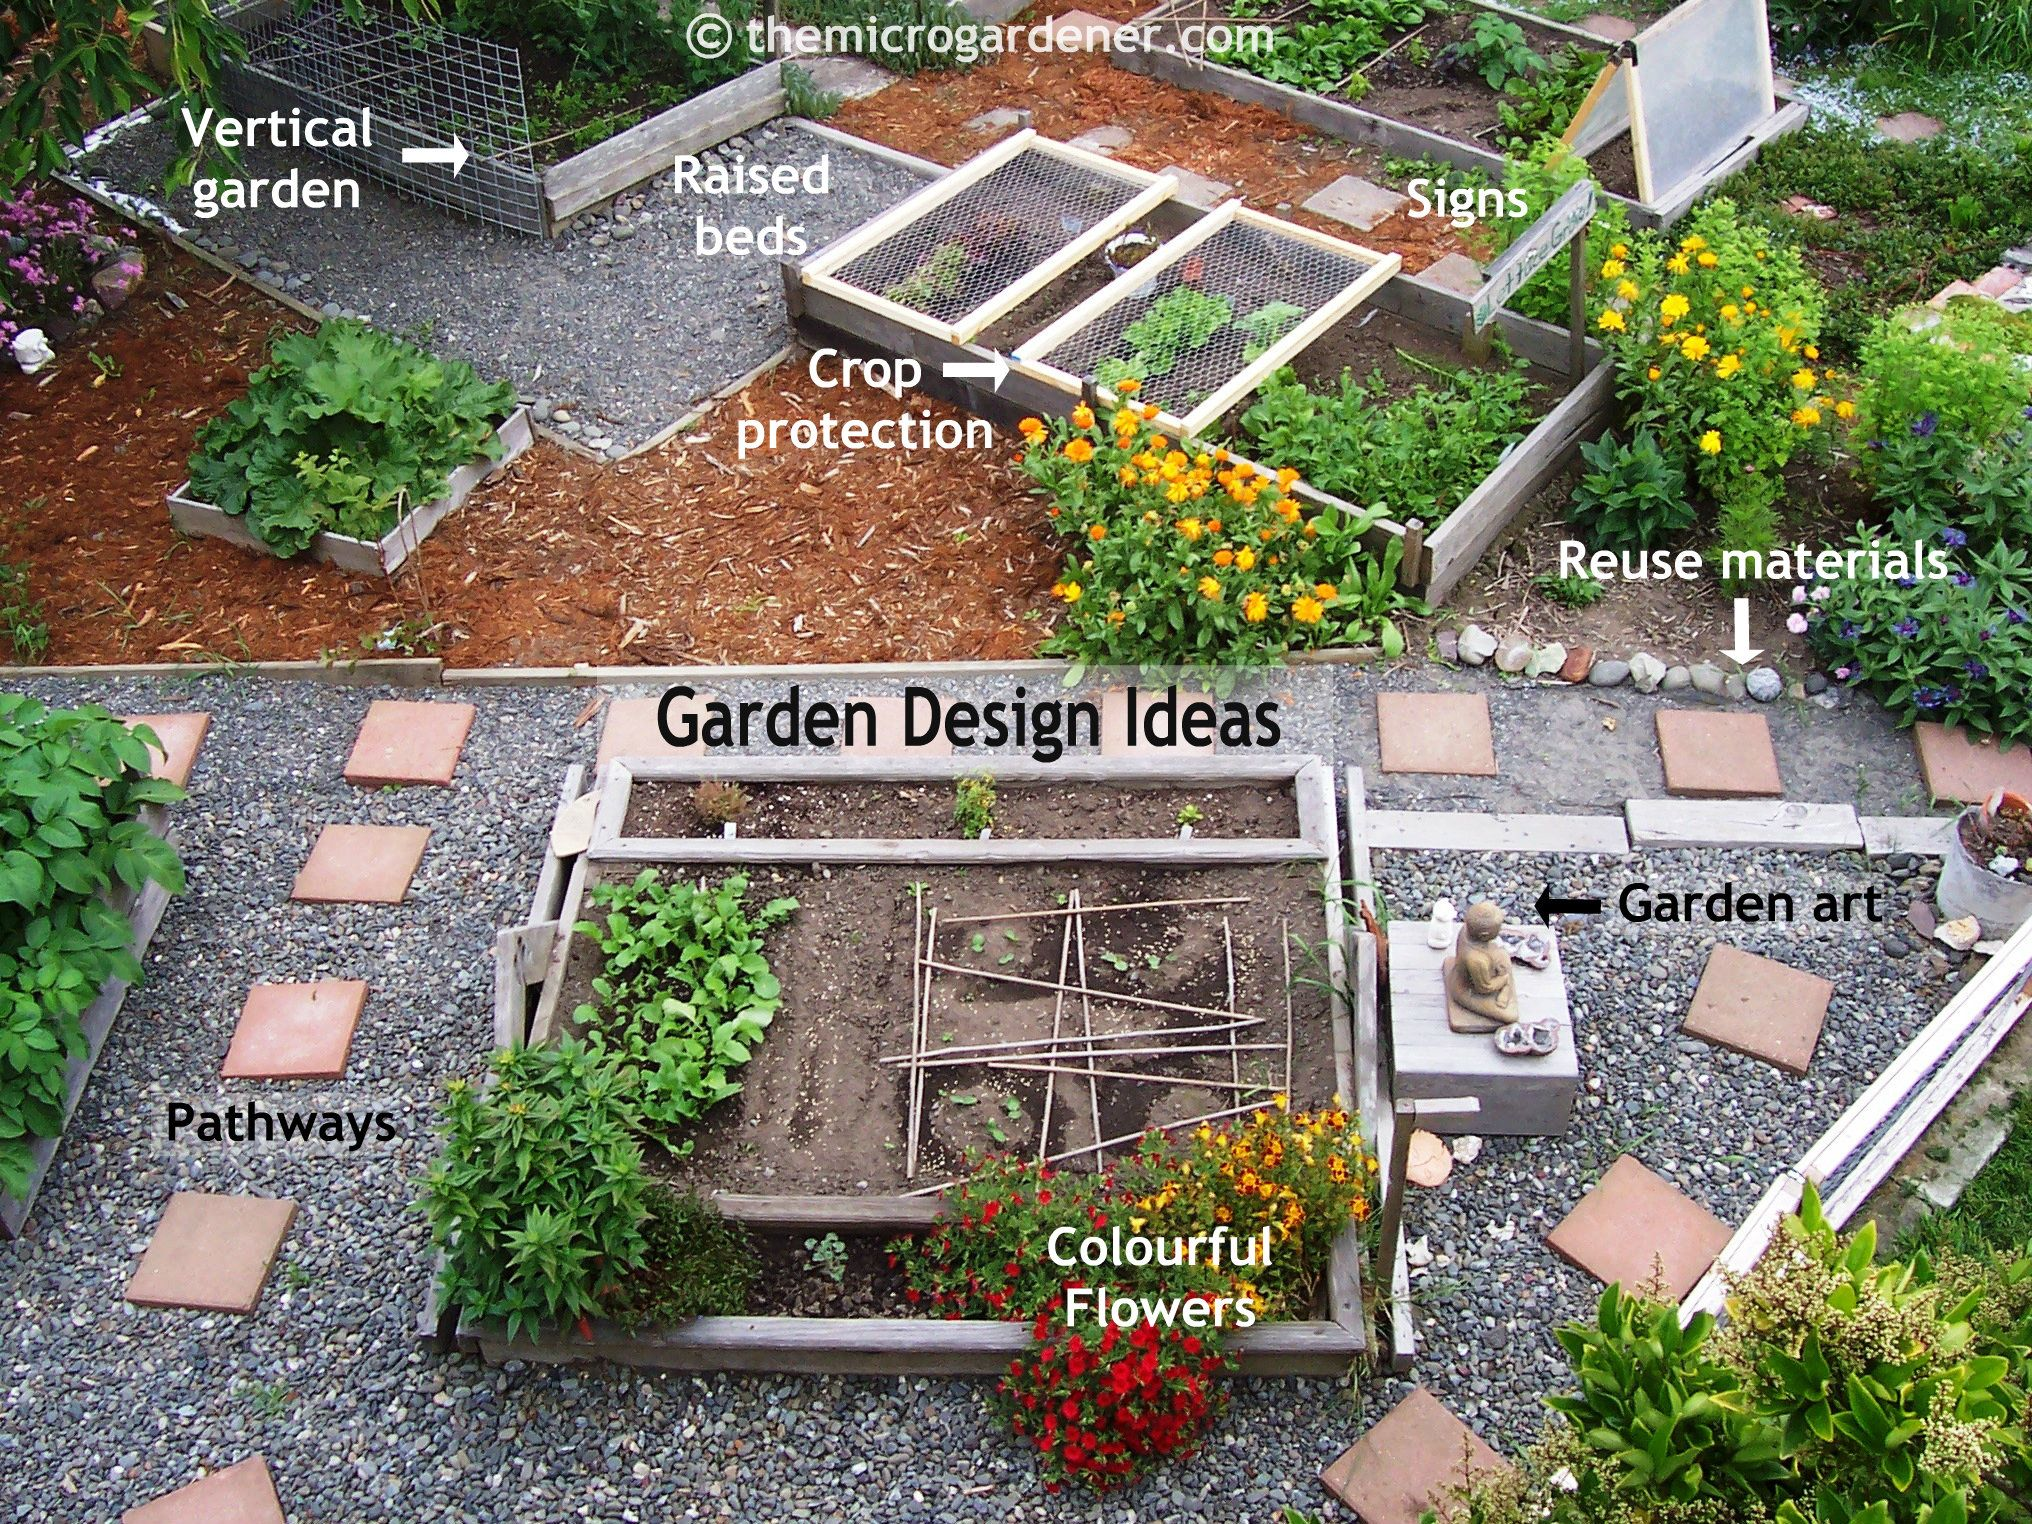 Small garden design ideas on pinterest vertical gardens for Garden layout ideas